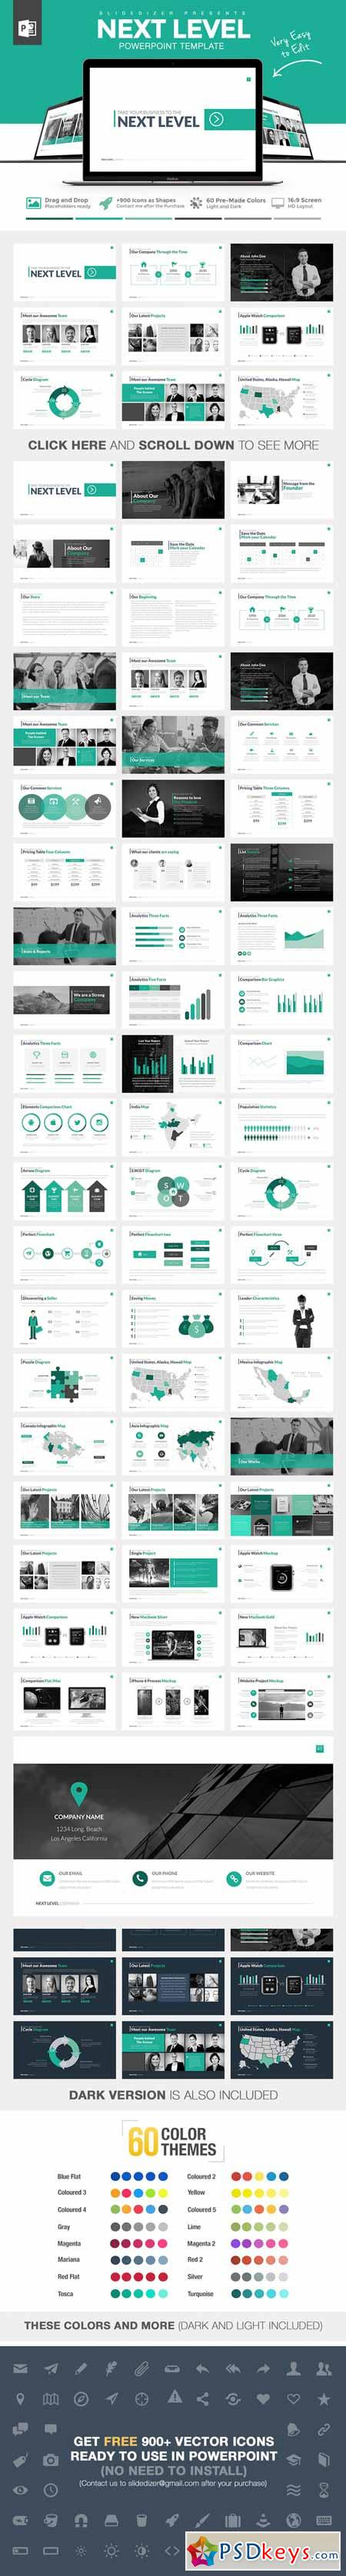 Next Level Powerpoint Template 263297